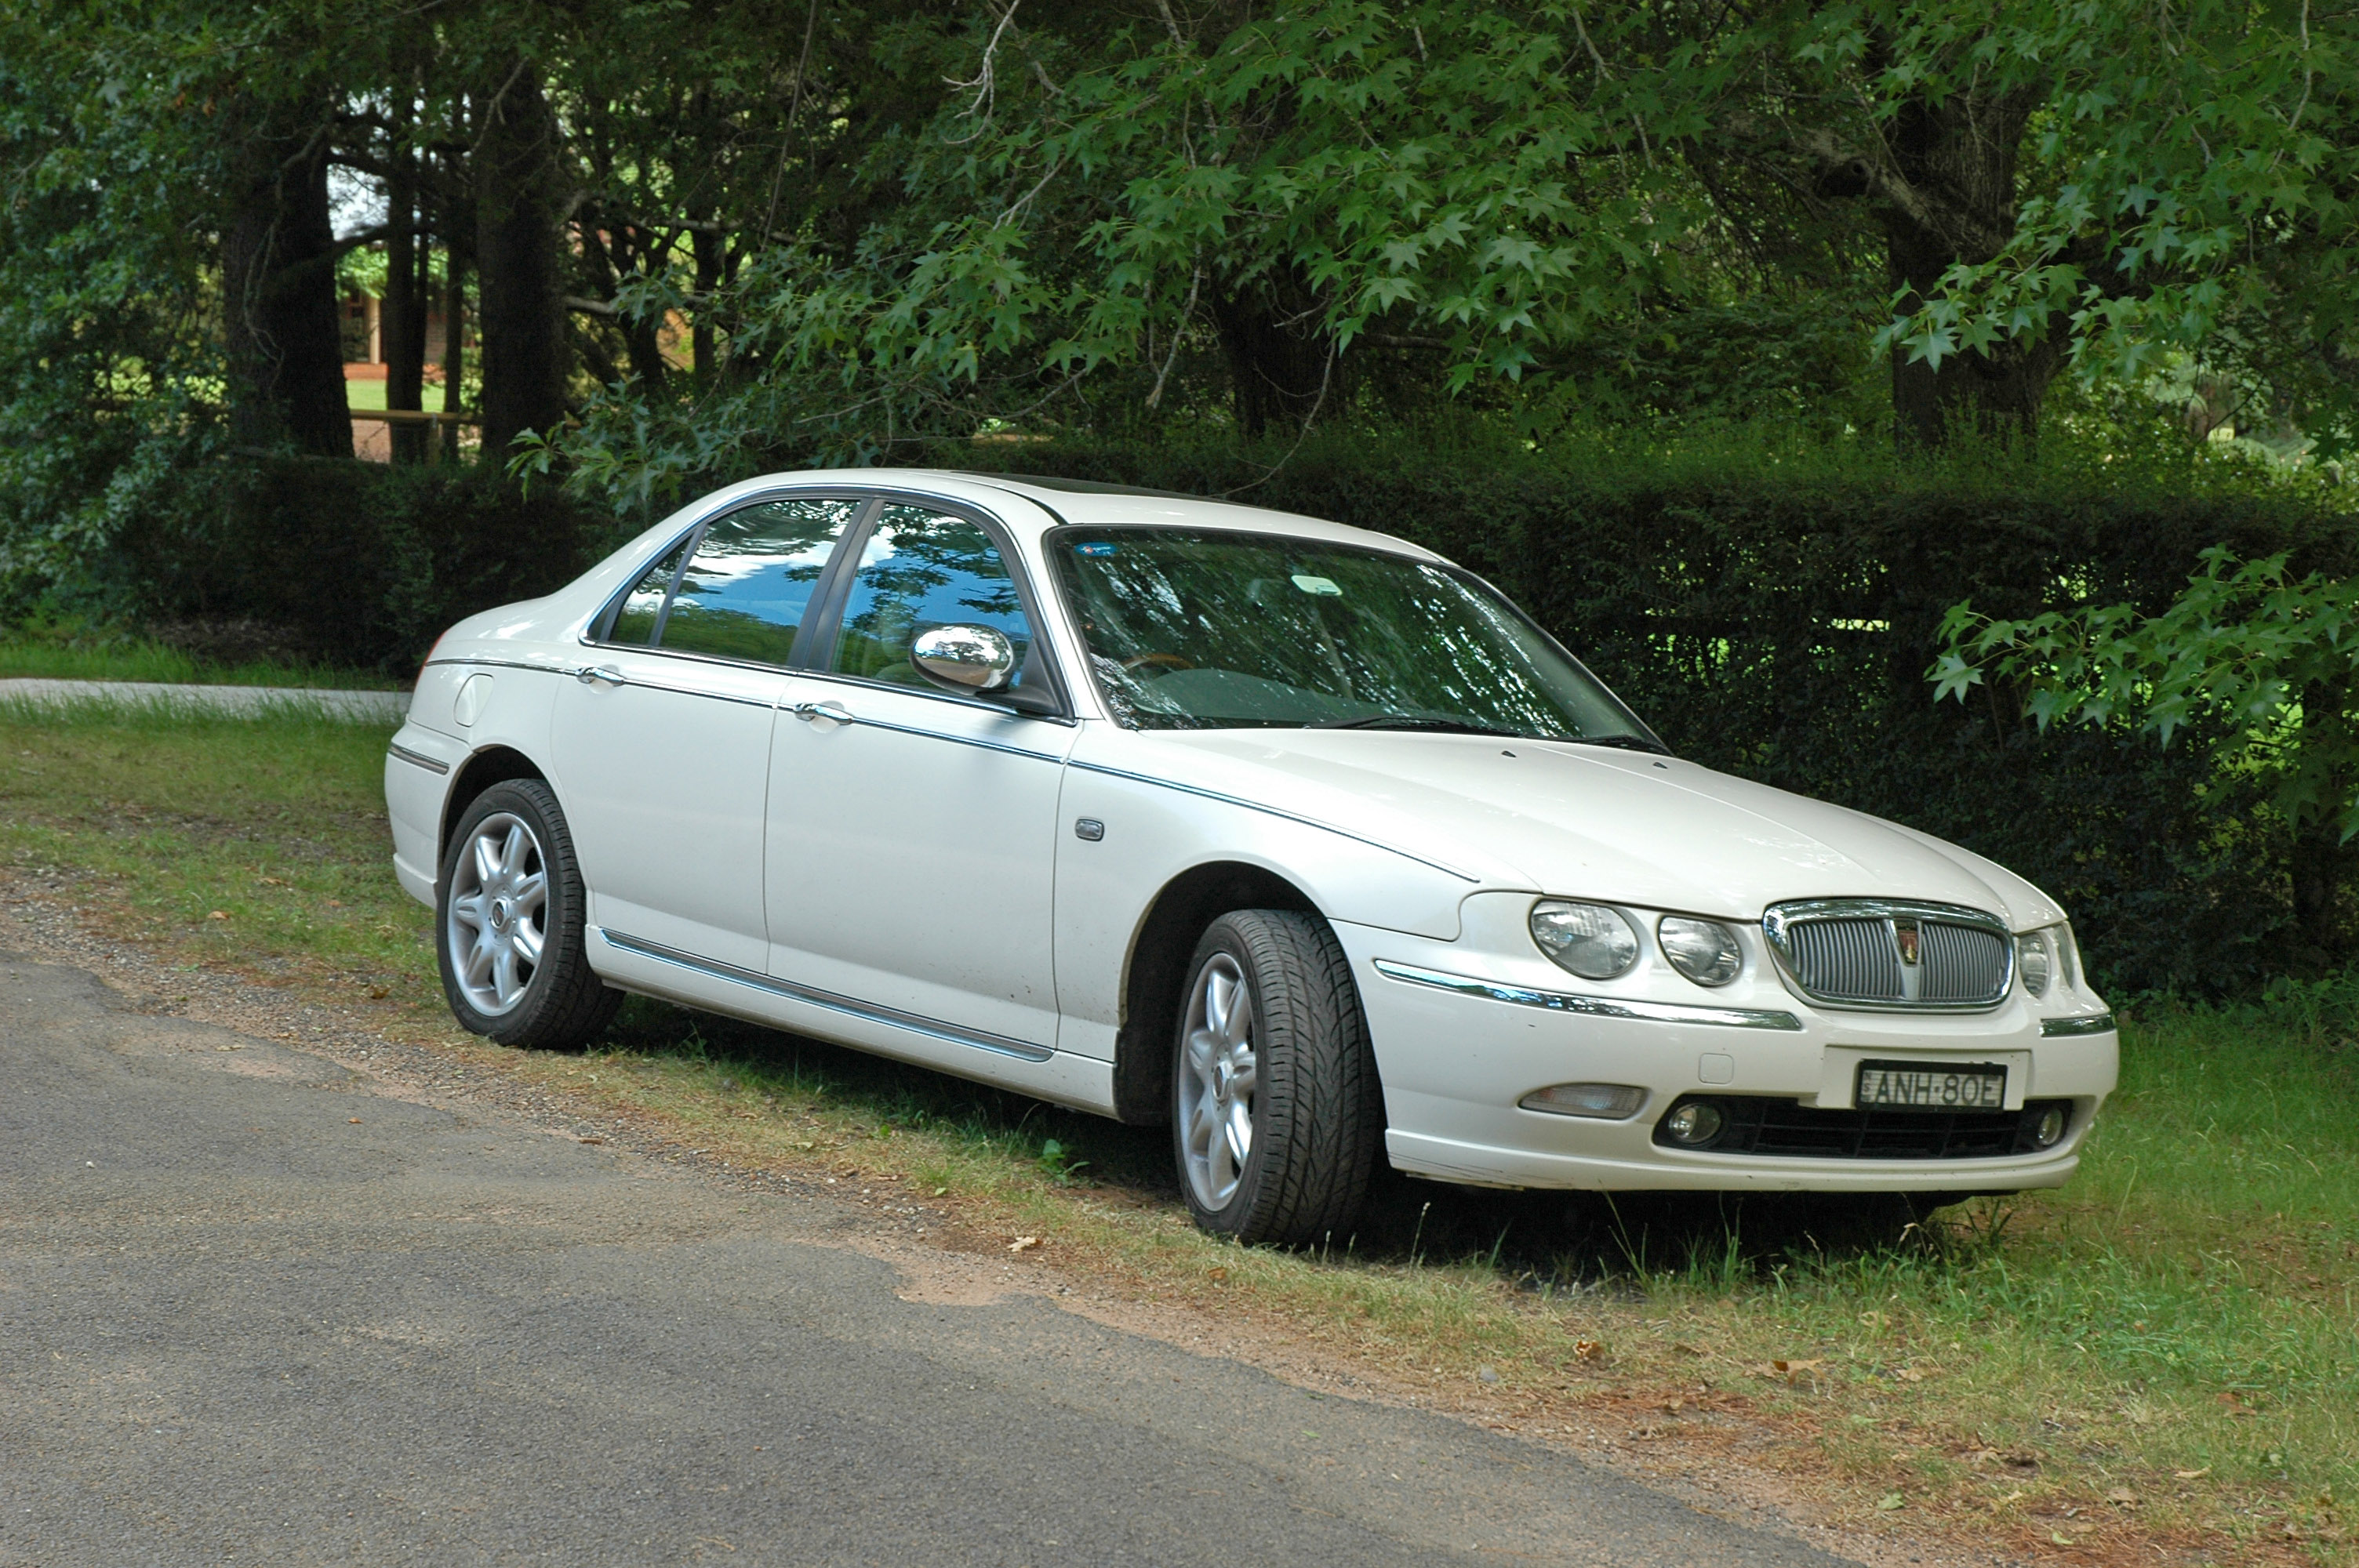 rover r40 75 mg zt technical page rover owners club inc nsw act rh roverownersclub com au Rover 75 V8 Rover 75 Coupe